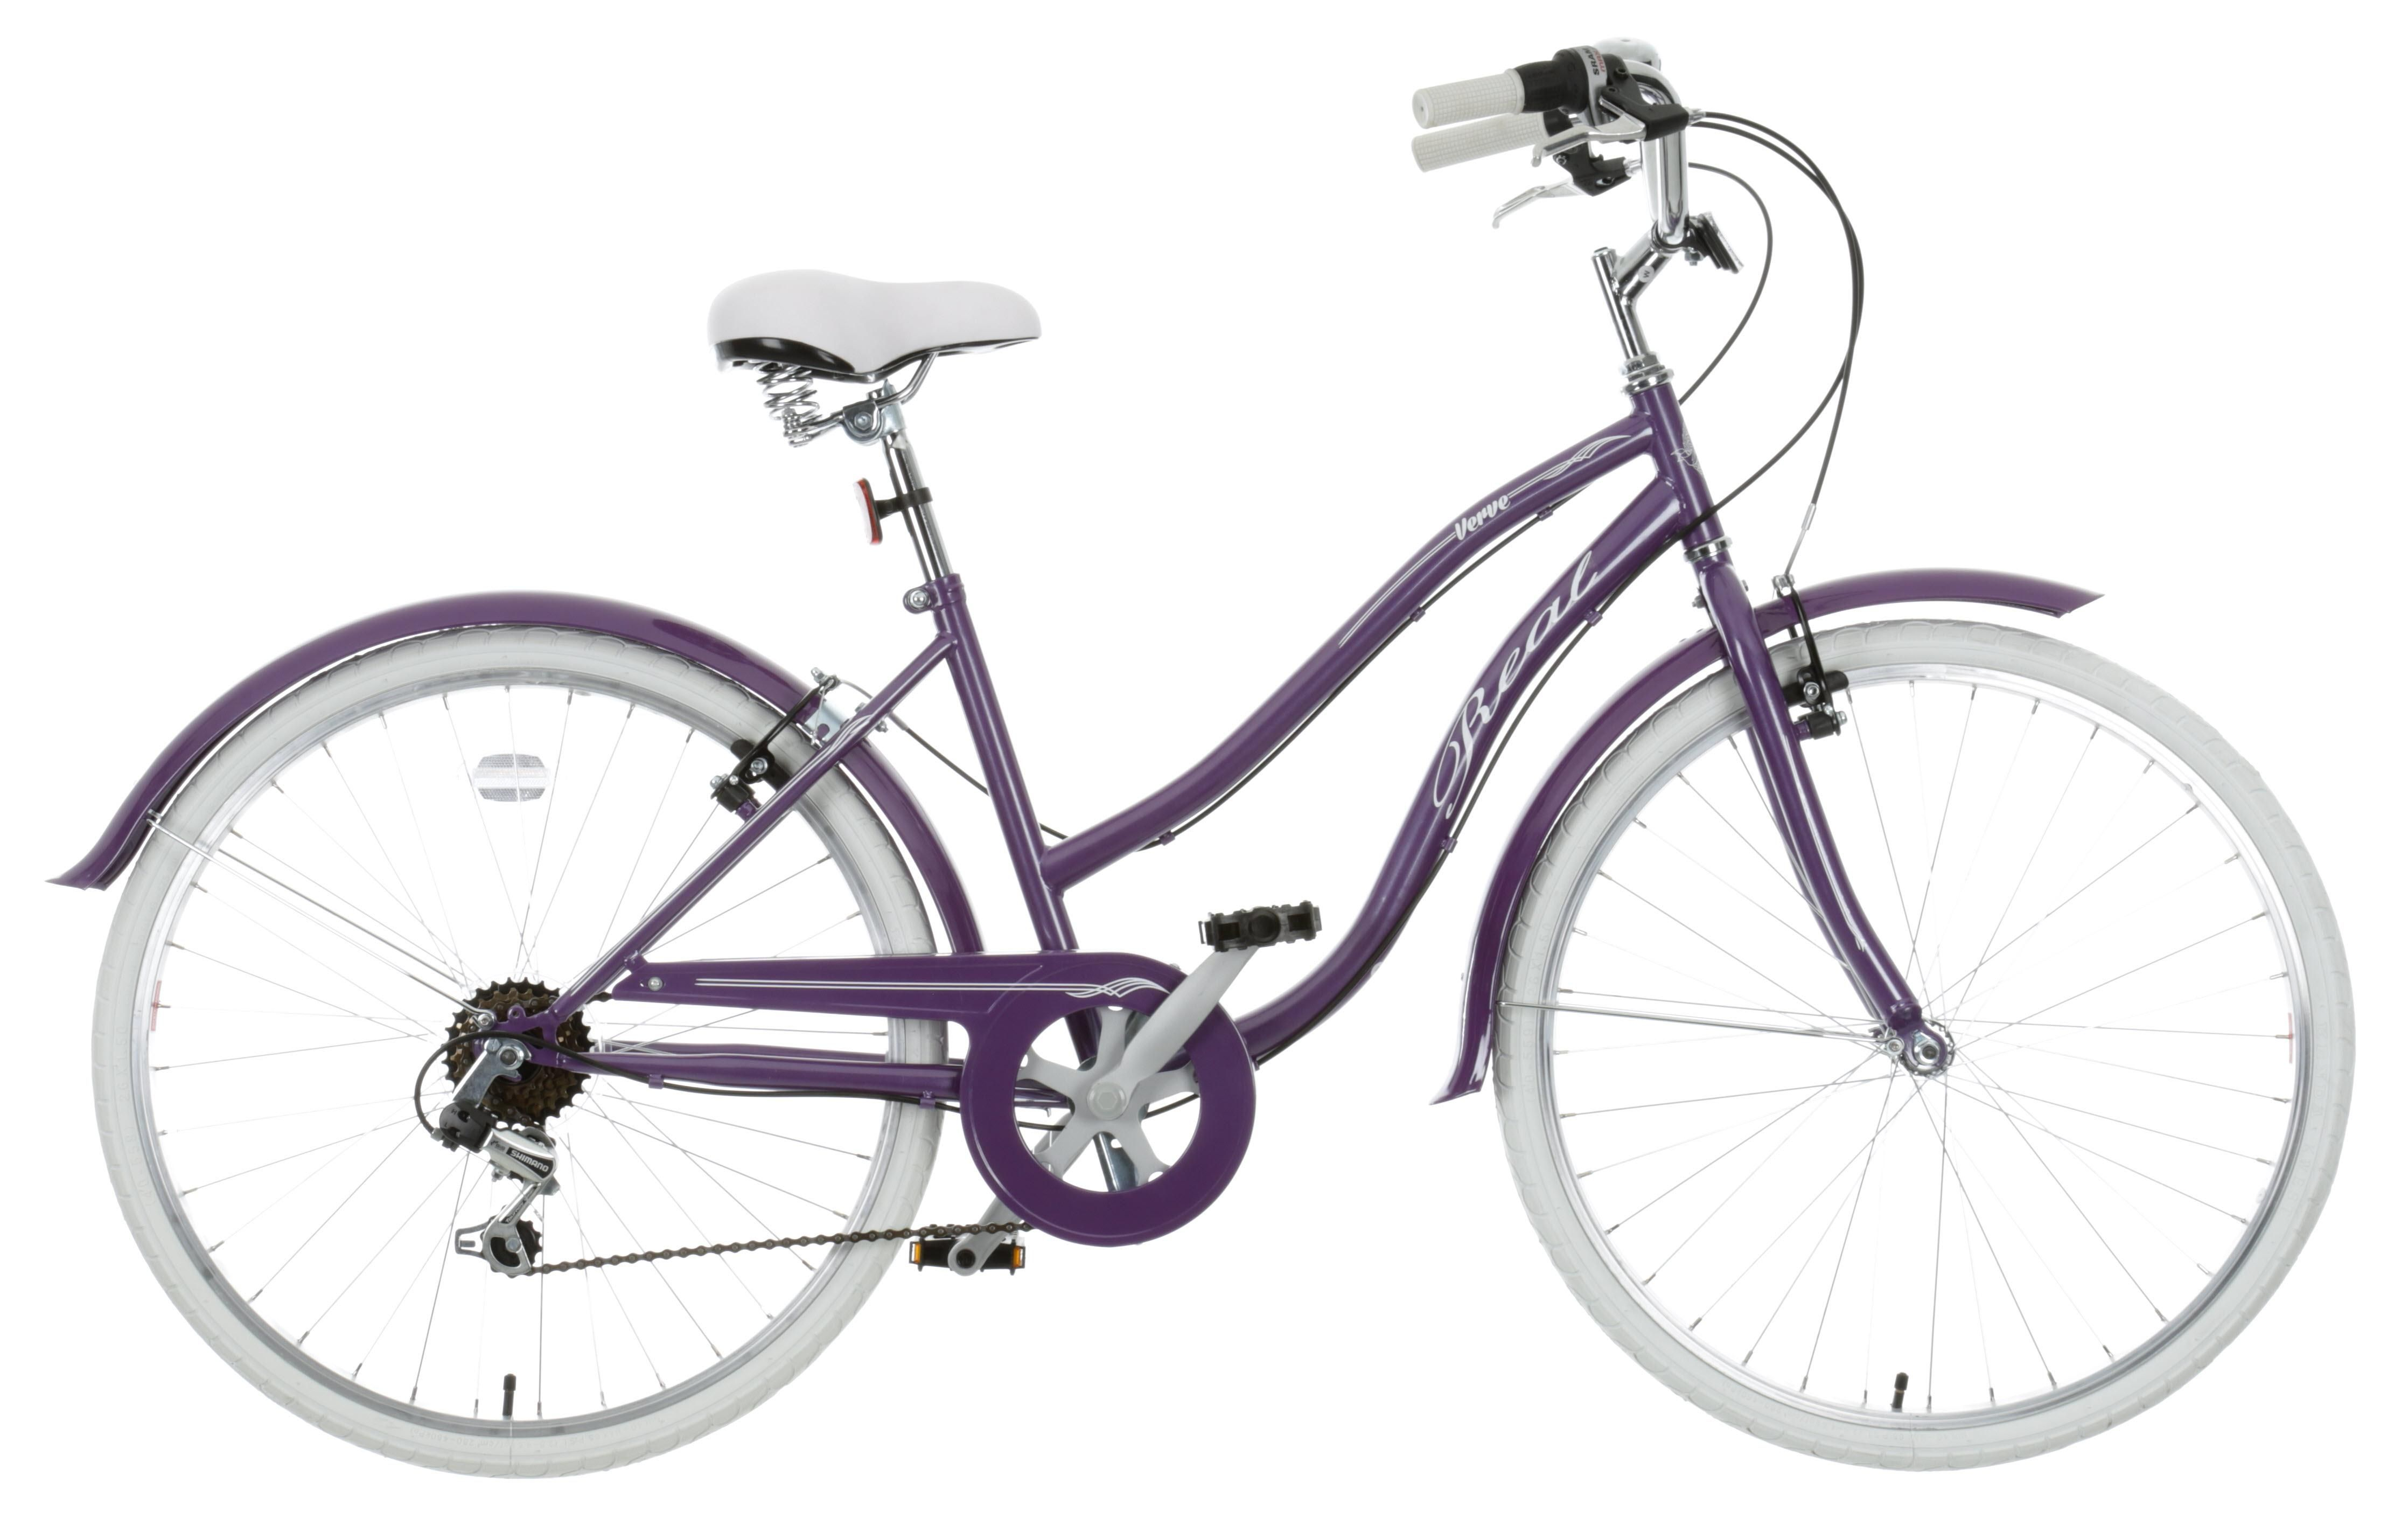 The Real Verve Womens Hybrid Bike Beautiful Purple Frame Will Have